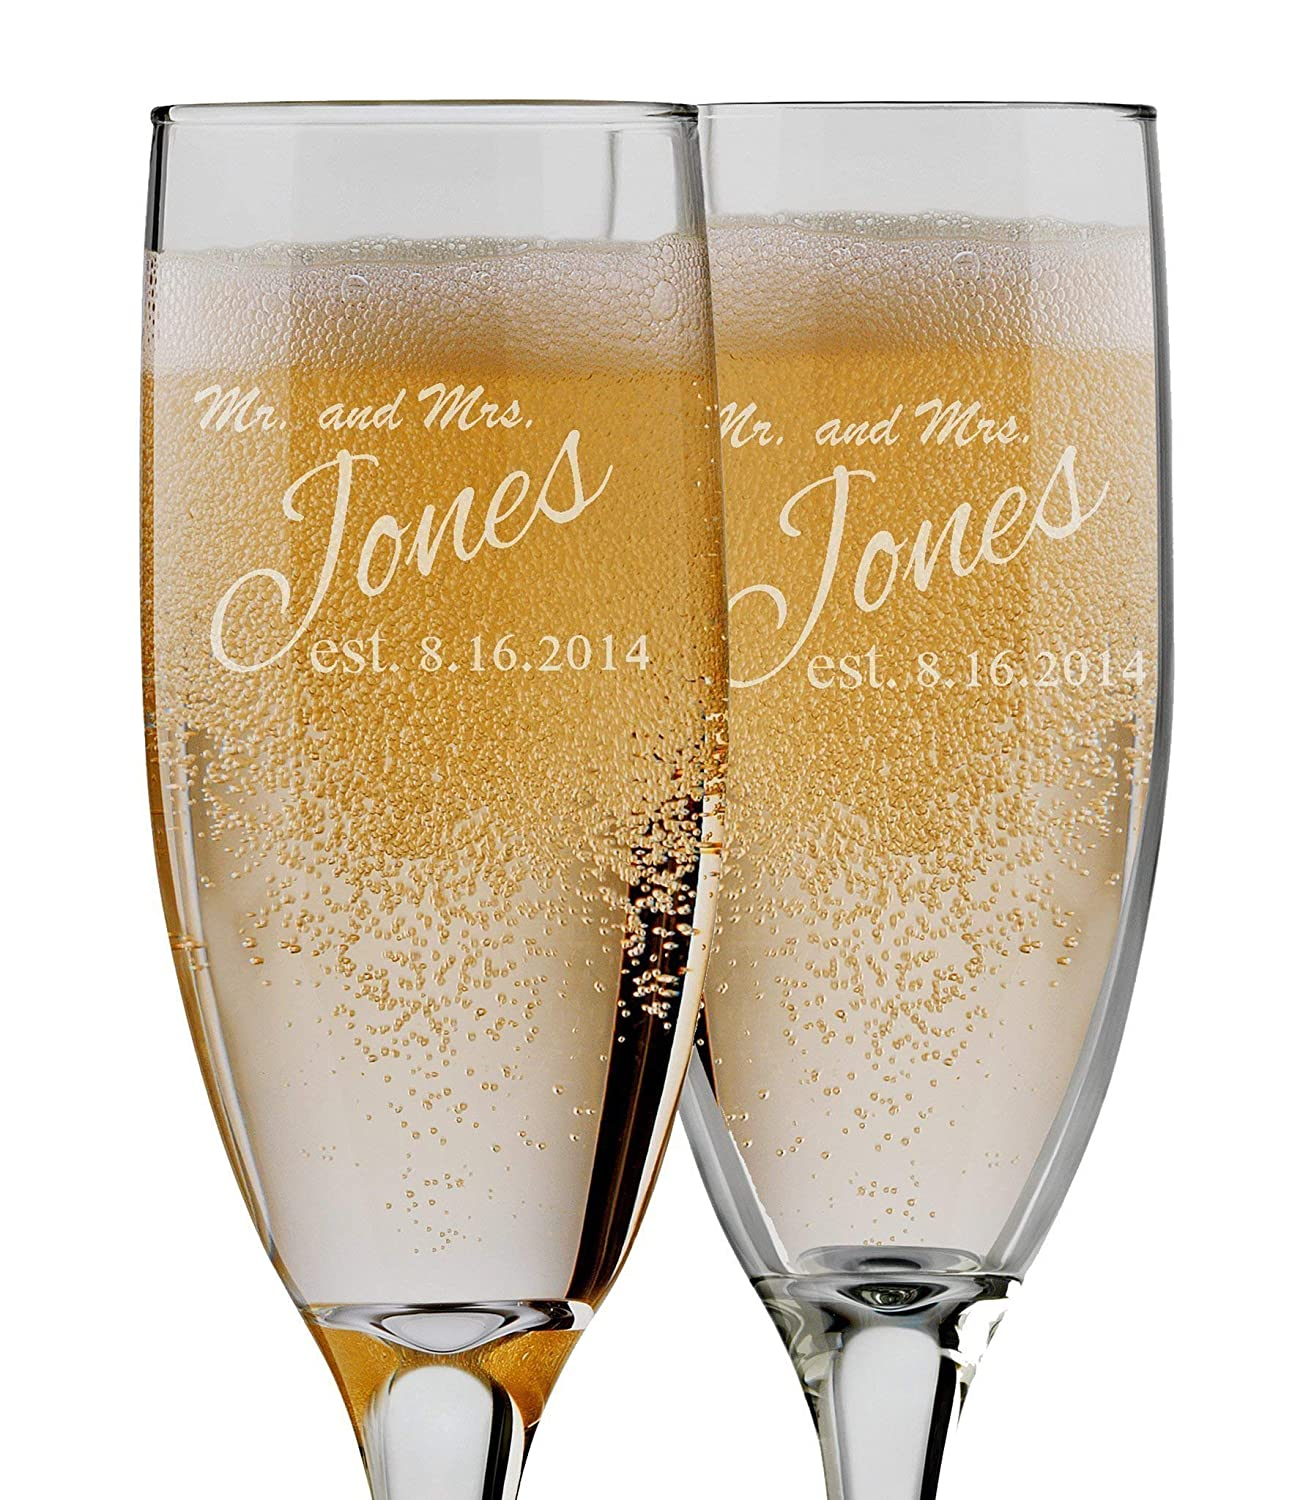 Bride and Groom Champagne Flutes - Set of 2 Personalized - 6 oz Custom Engraved Glasses - Monogram Mr and Mrs Toasting Couple Wedding Gift